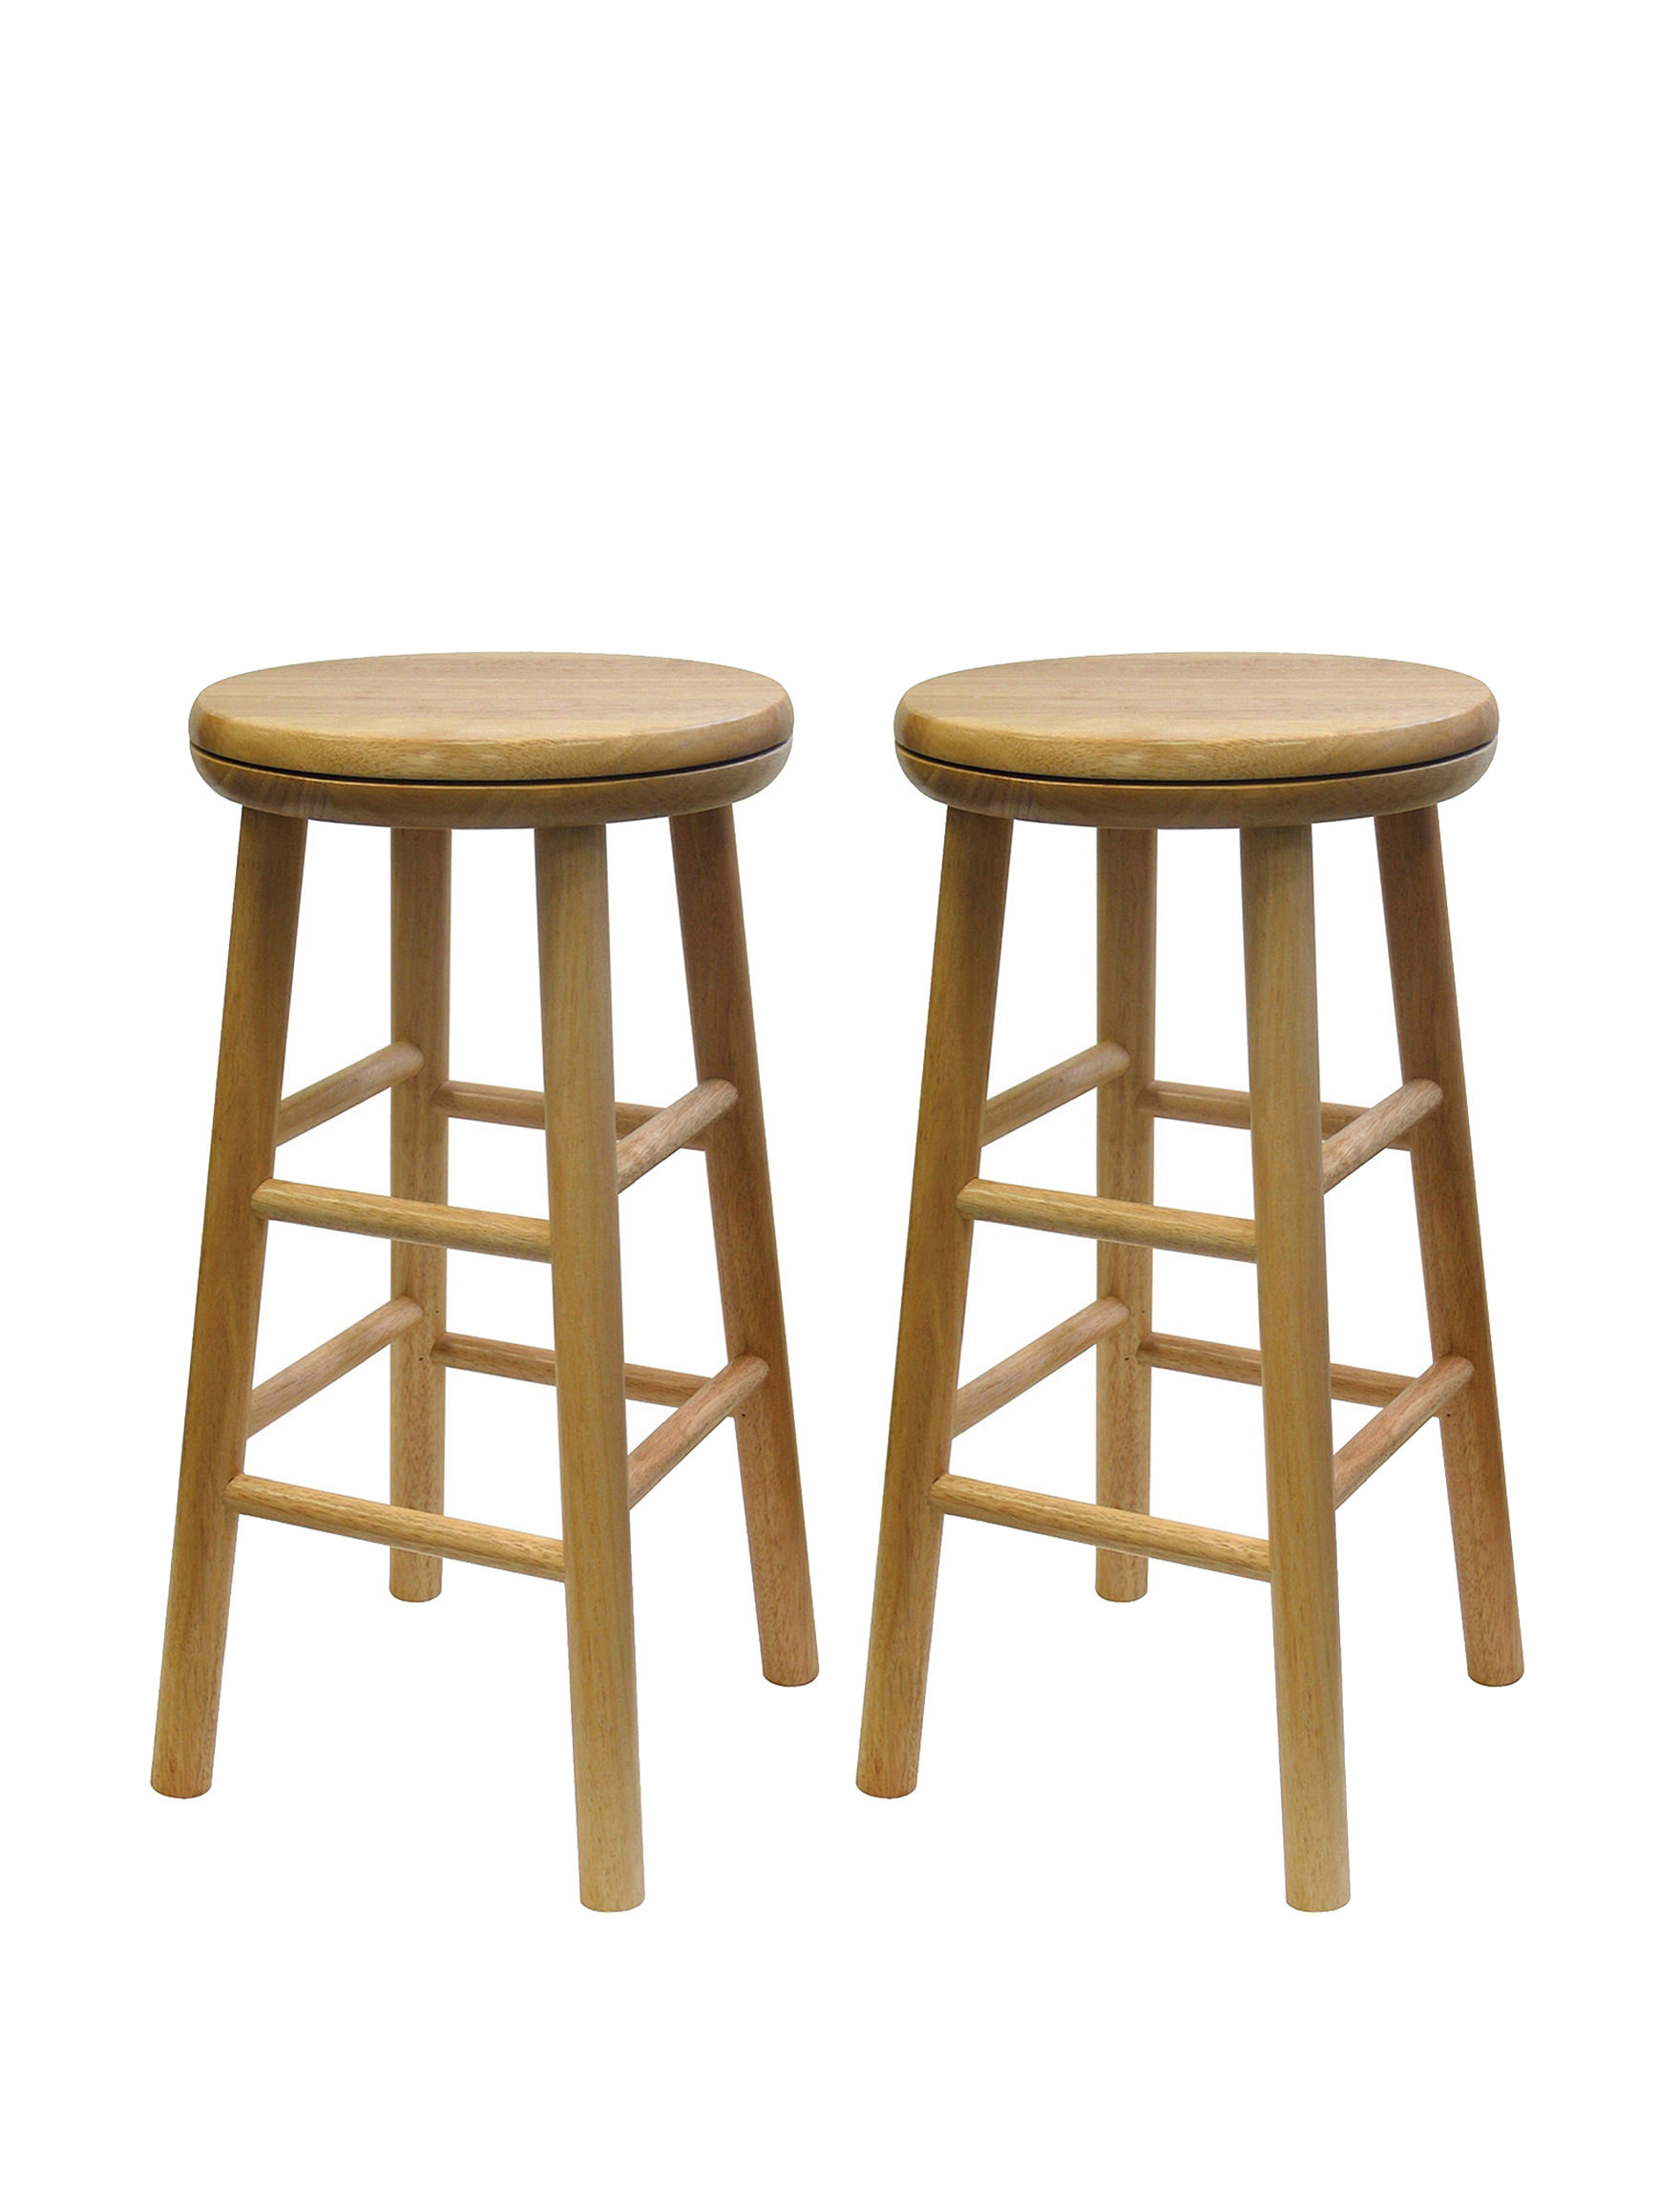 Winsome khaki Bar & Kitchen Stools Kitchen & Dining Furniture